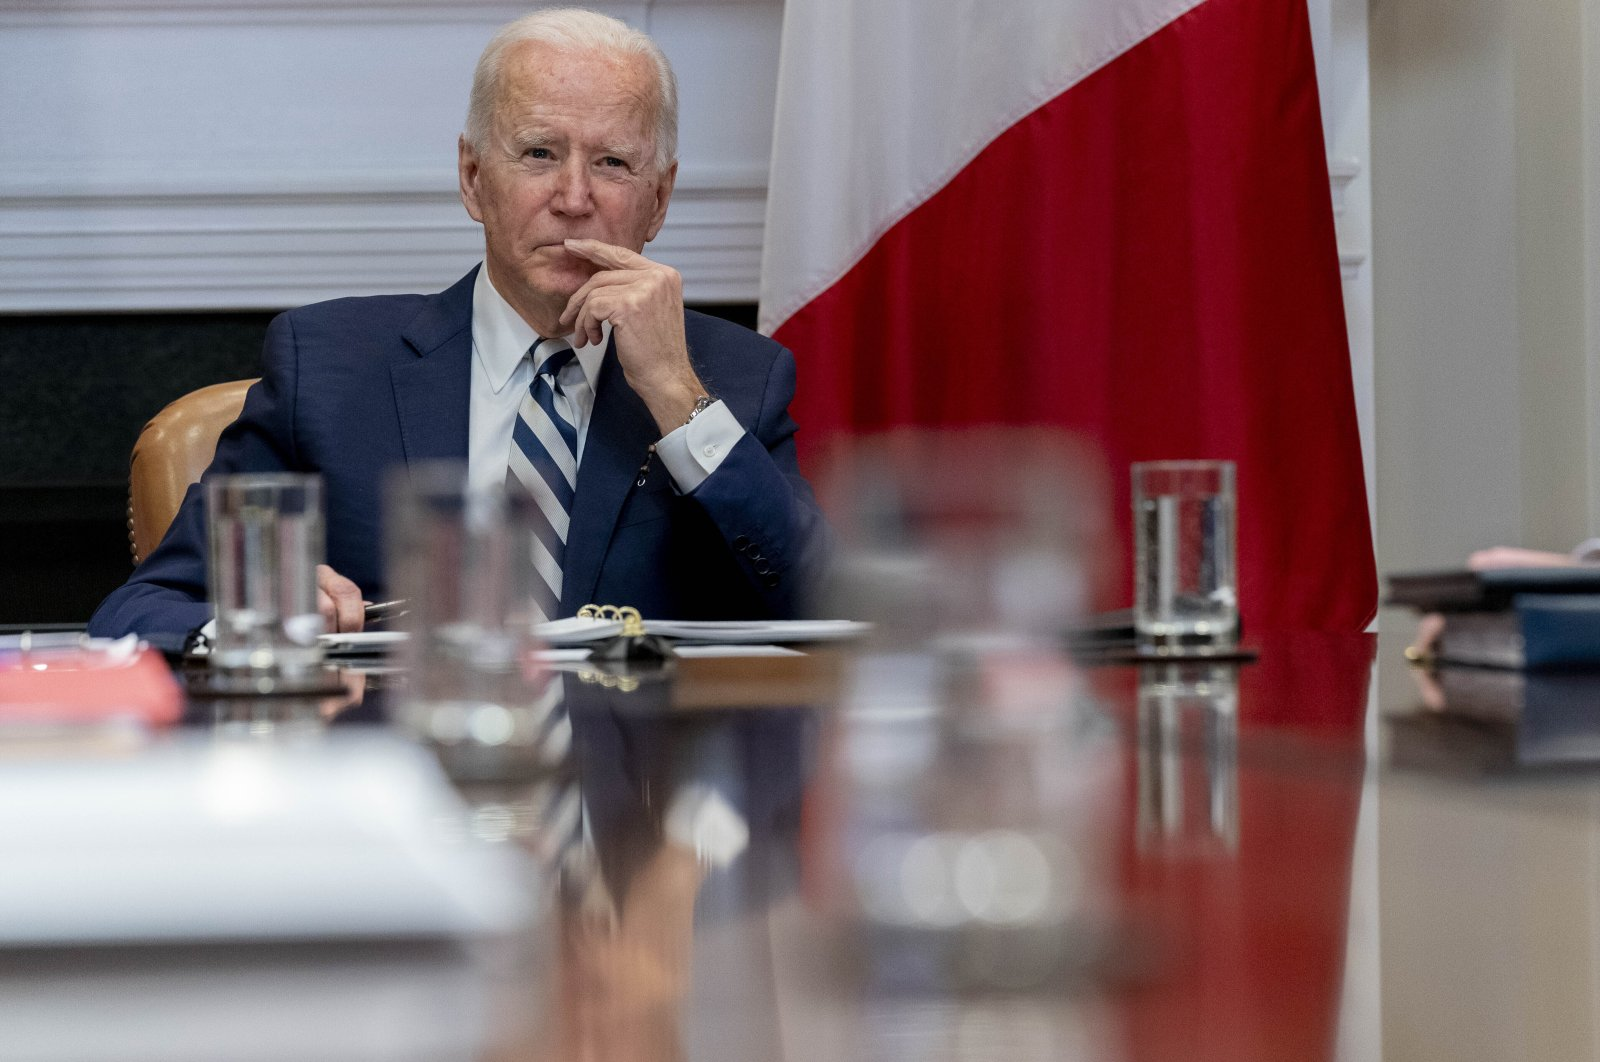 President Joe Biden attends a virtual meeting in the Roosevelt Room of the White House in Washington, U.S., March 1, 2021. (AP Photo)